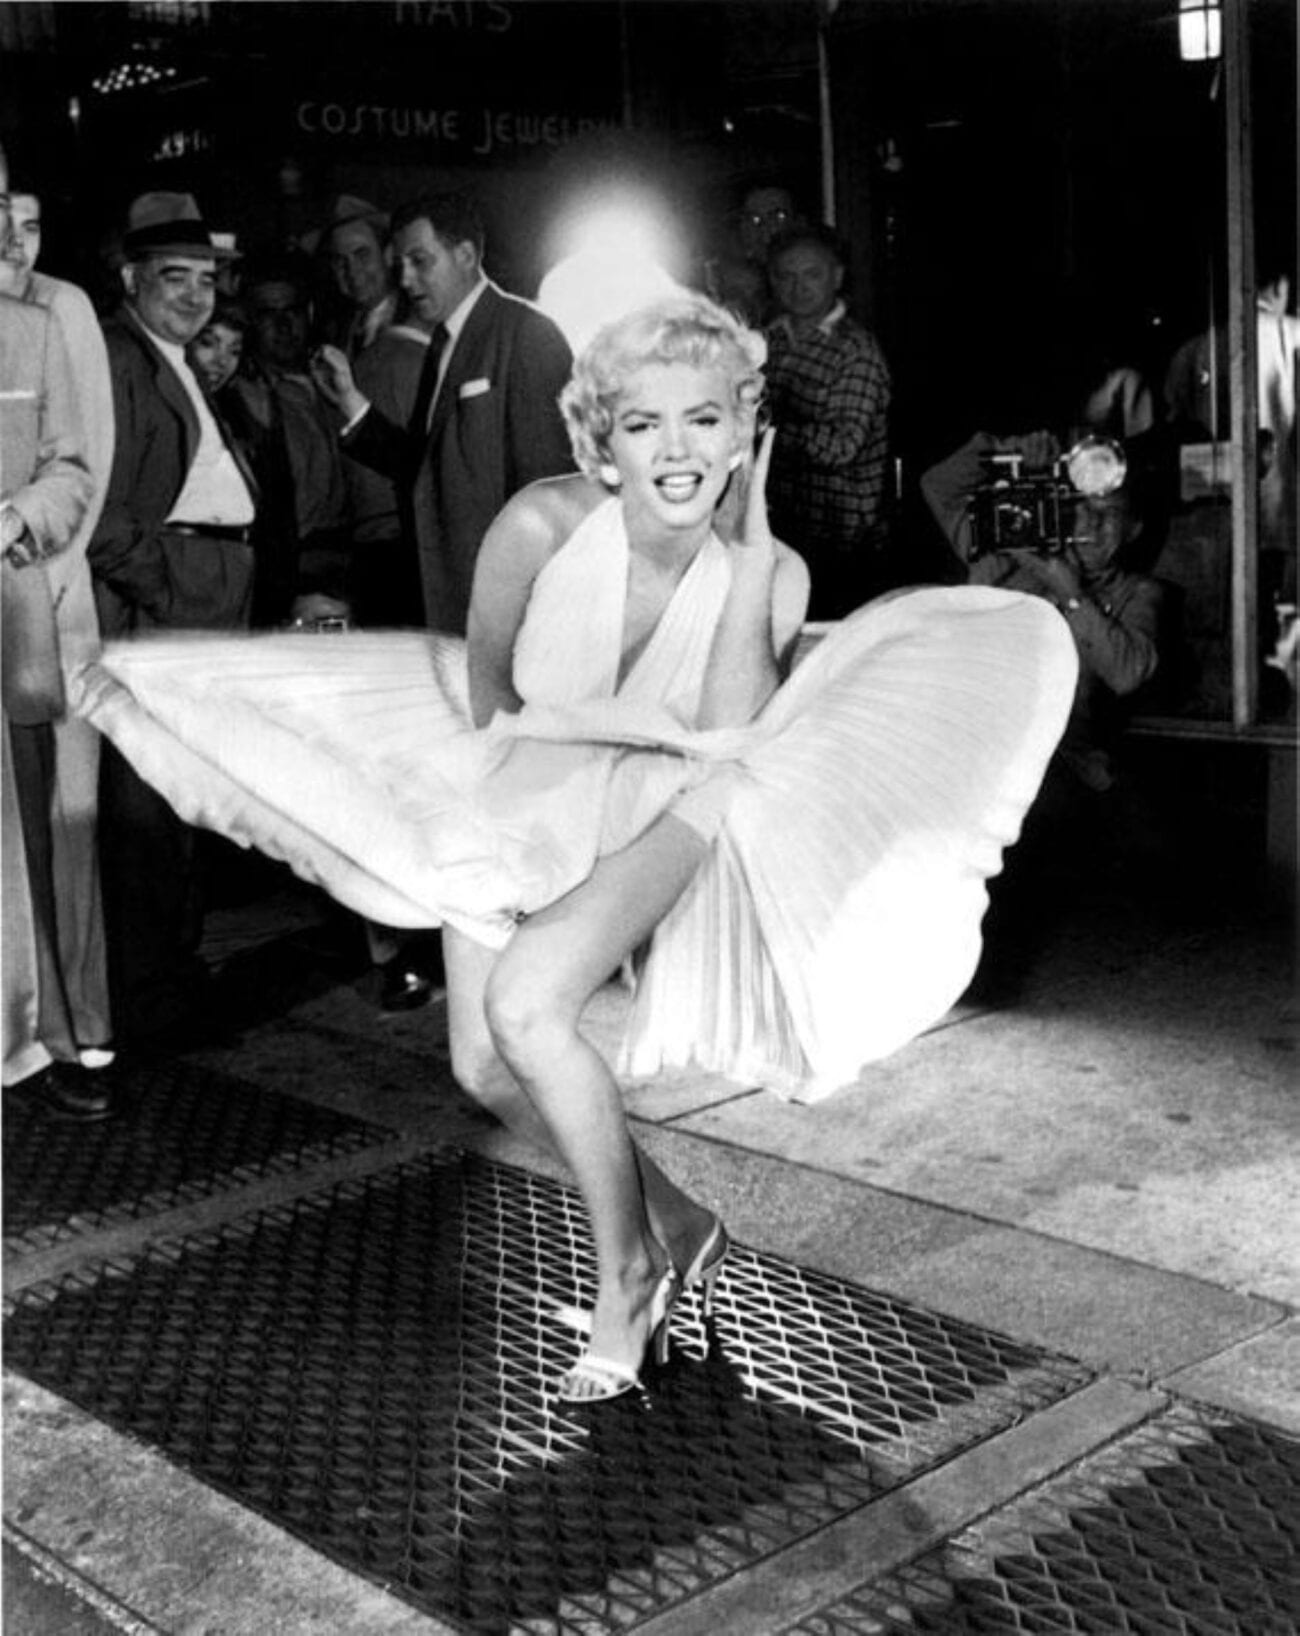 Since her death, Marilyn Monroe has also been the subject in a number of conspiracy theories. Here are some of the most interesting theories.